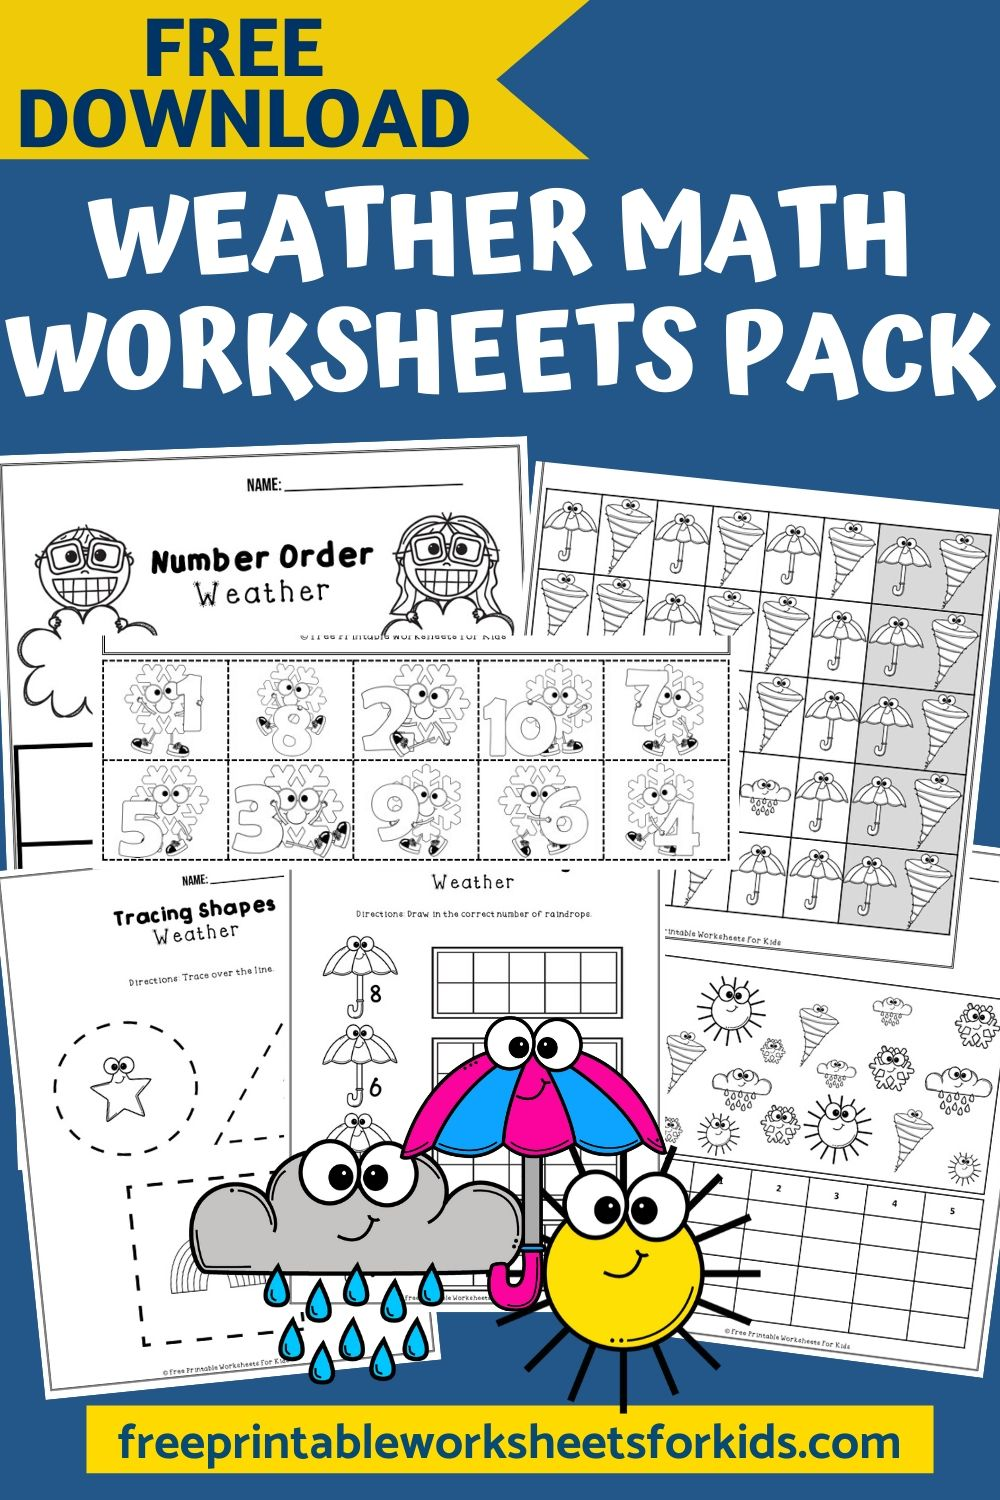 Fun Weather Printables for Preschool and Kindergarten   Weather-Themed Counting Games   Hands On Math Homeschool Activities   Kids Classroom Center Ideas and Worksheets #FreePrintableWorksheetsForKids #weather #snow #cloud #rain #sun #storm #count #number #pattern